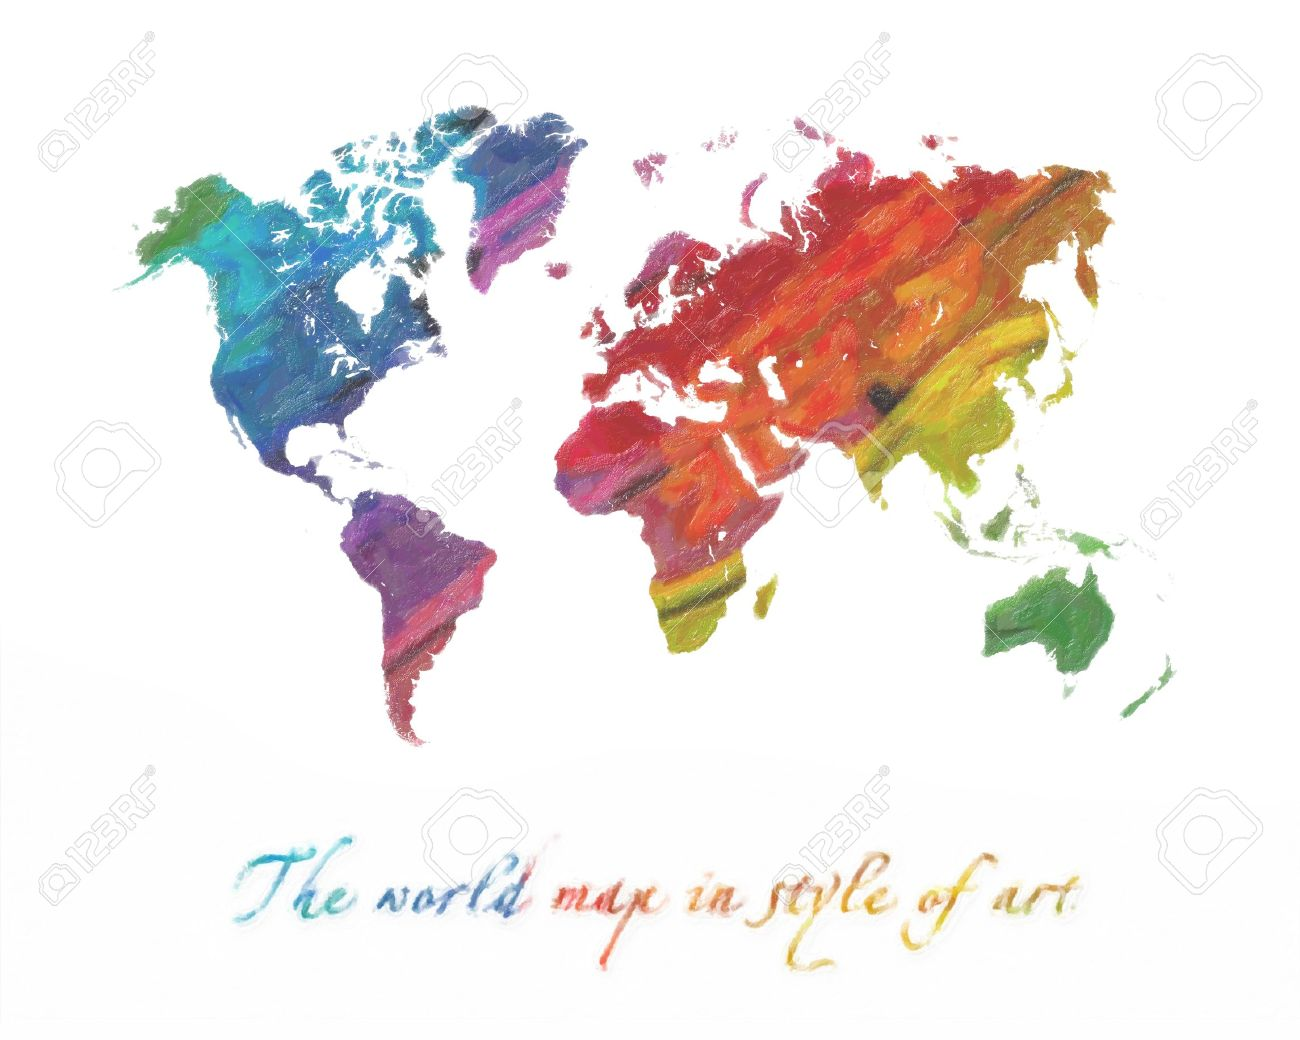 The world map in style of art. Multi-colored tones. Isolated on a white background Stock Photo - 11878615